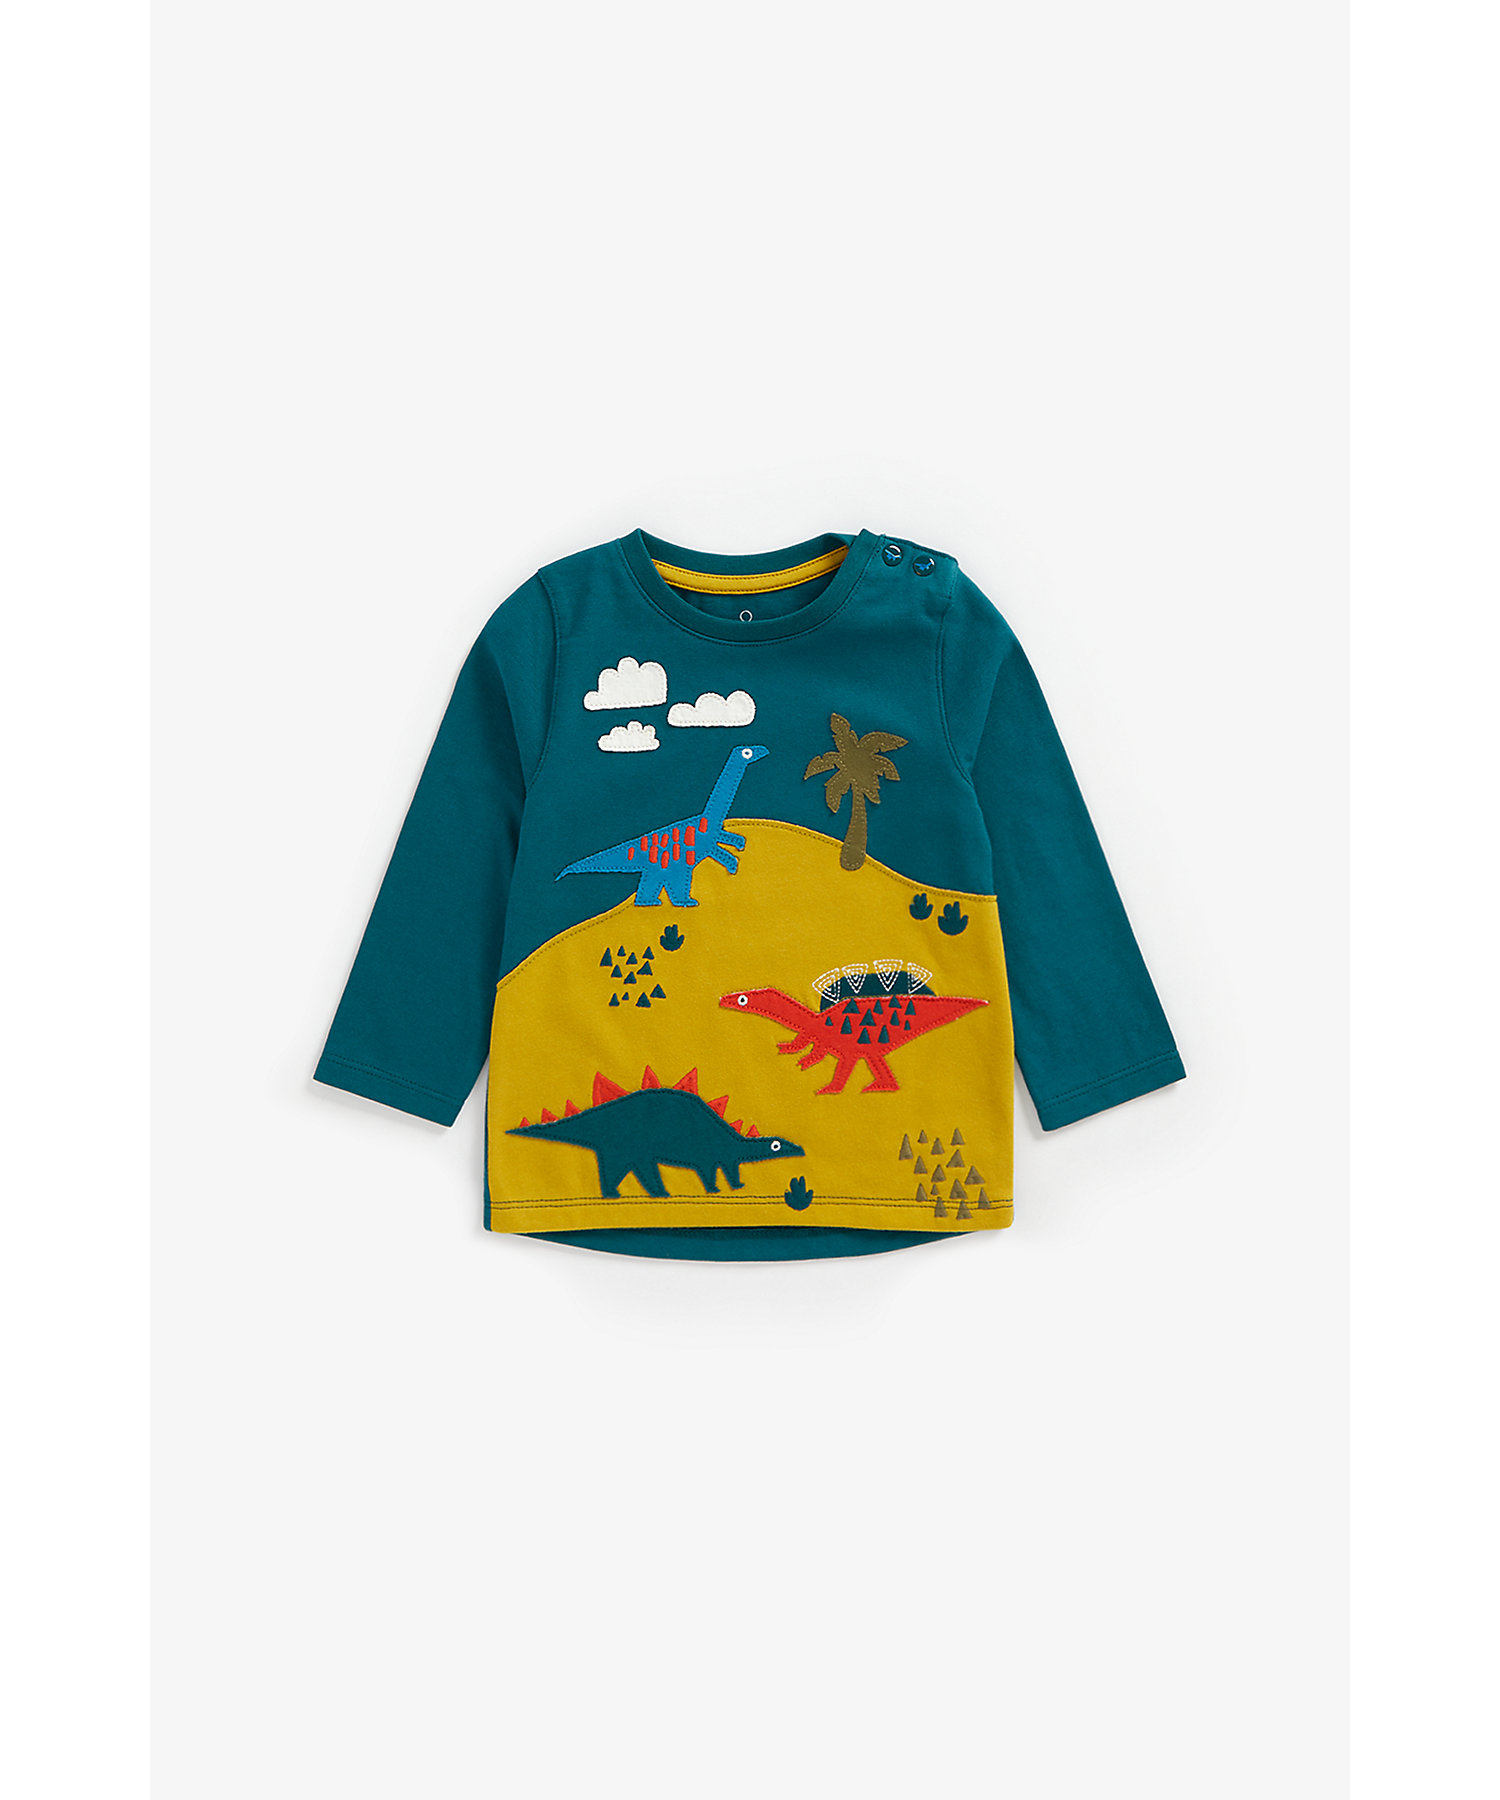 Mothercare   Boys Full Sleeves T-Shirt Dino Patchwork - Teal